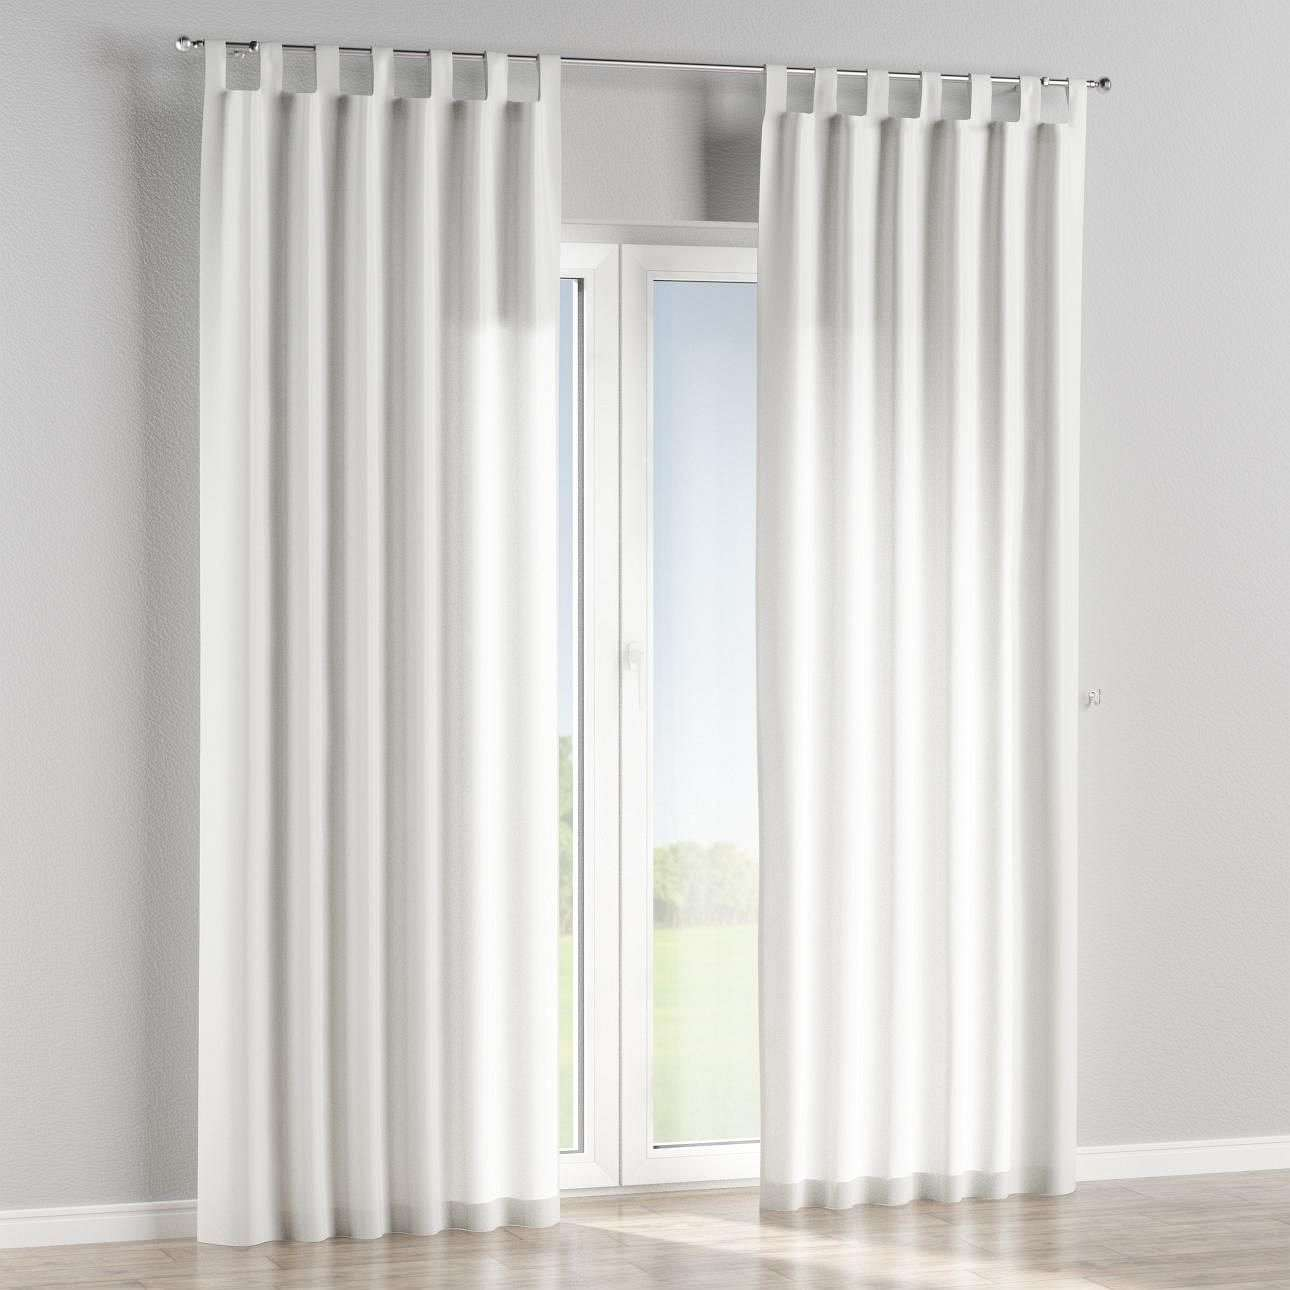 Tab top curtains in collection SALE, fabric: 137-59